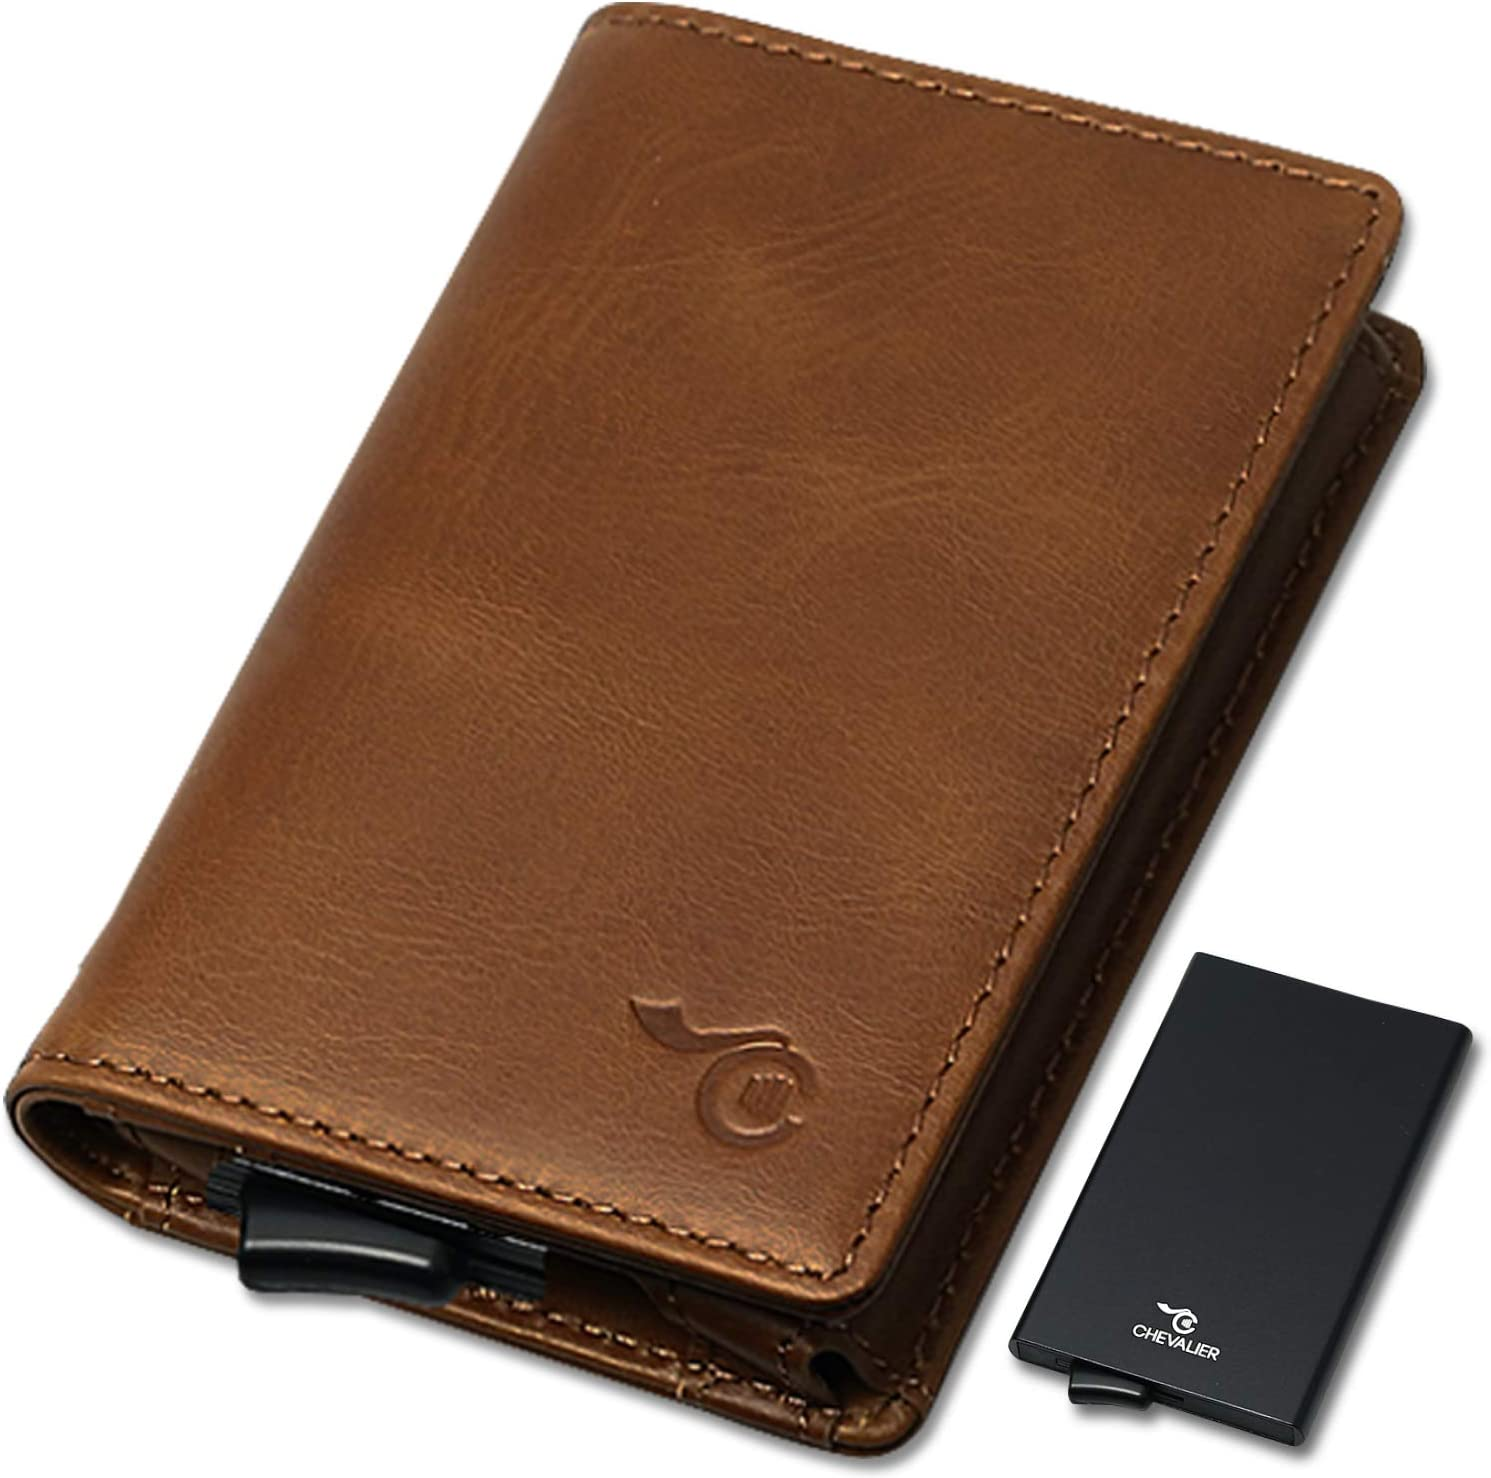 Card Holder Anti Piratage Portefeuille Mini en Cuir V/éritable C-CHEVALIER/® Homme Femme int/égrant Porte-Cartes de Cr/édit Aluminium Anti-RFID d/étachable /à /éjection Automatique Marron